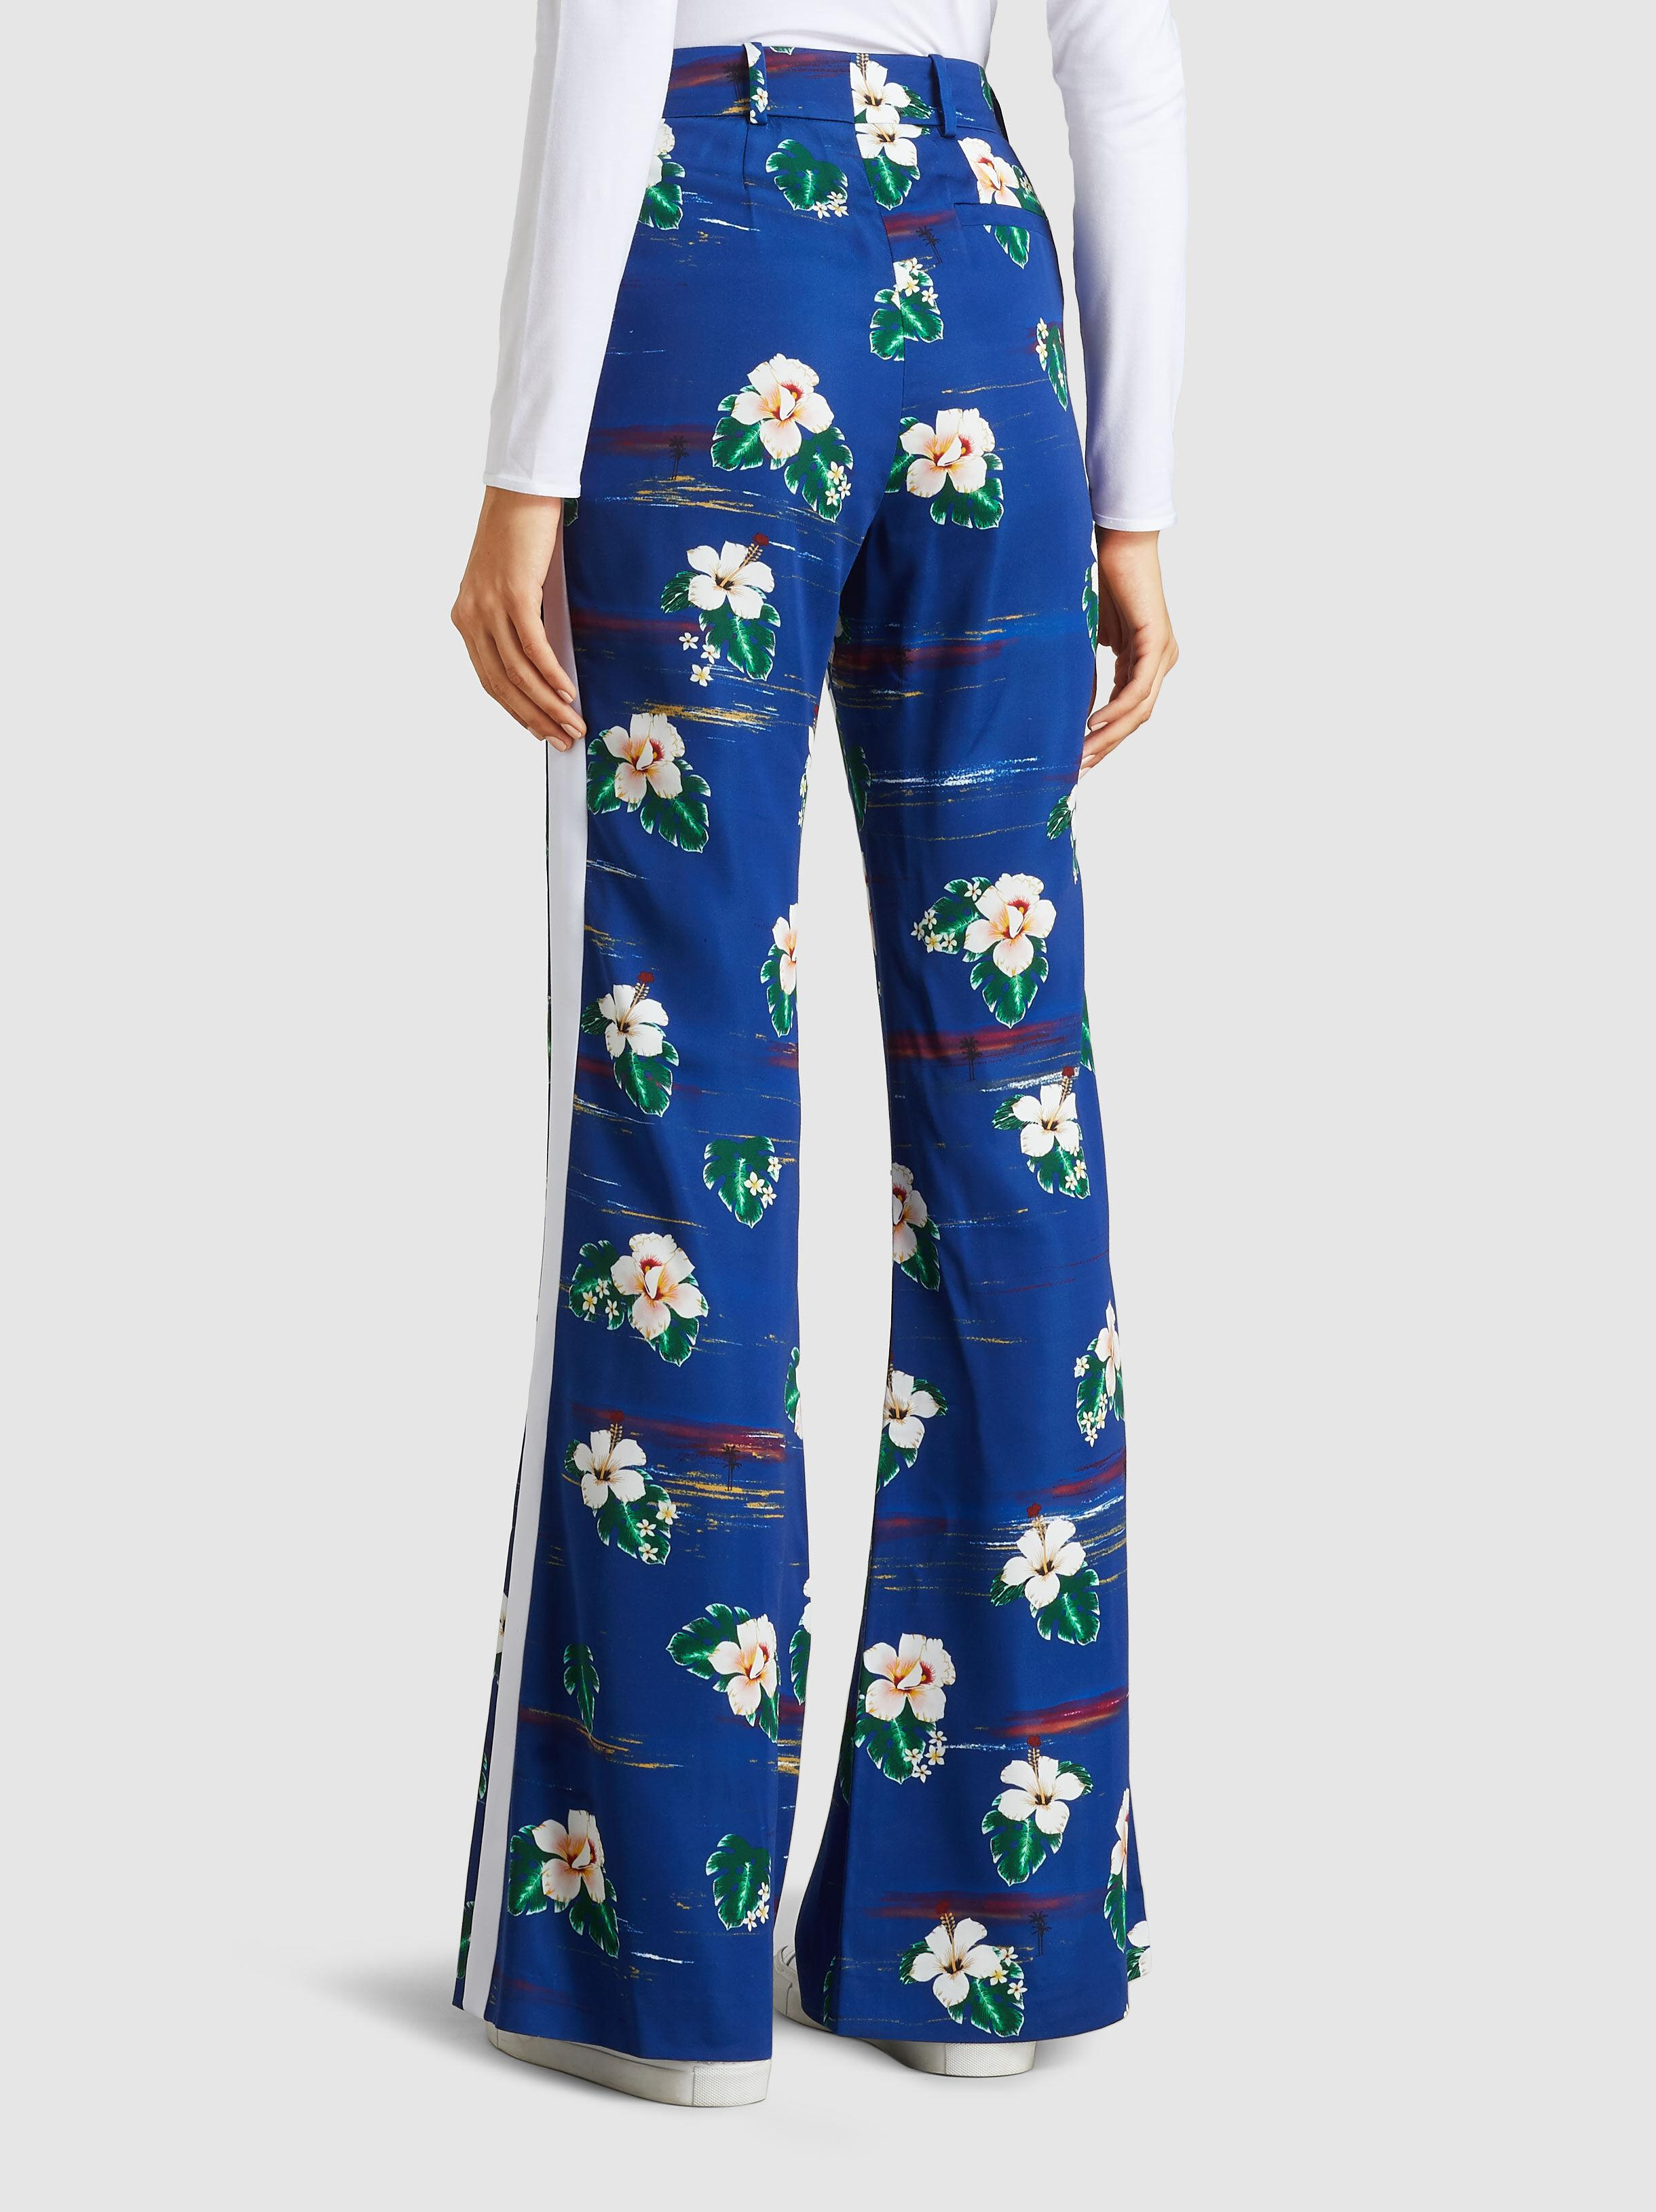 Ladies Viscose Navy Blue Floral Flower Print Casual tapered Trousers Pockets